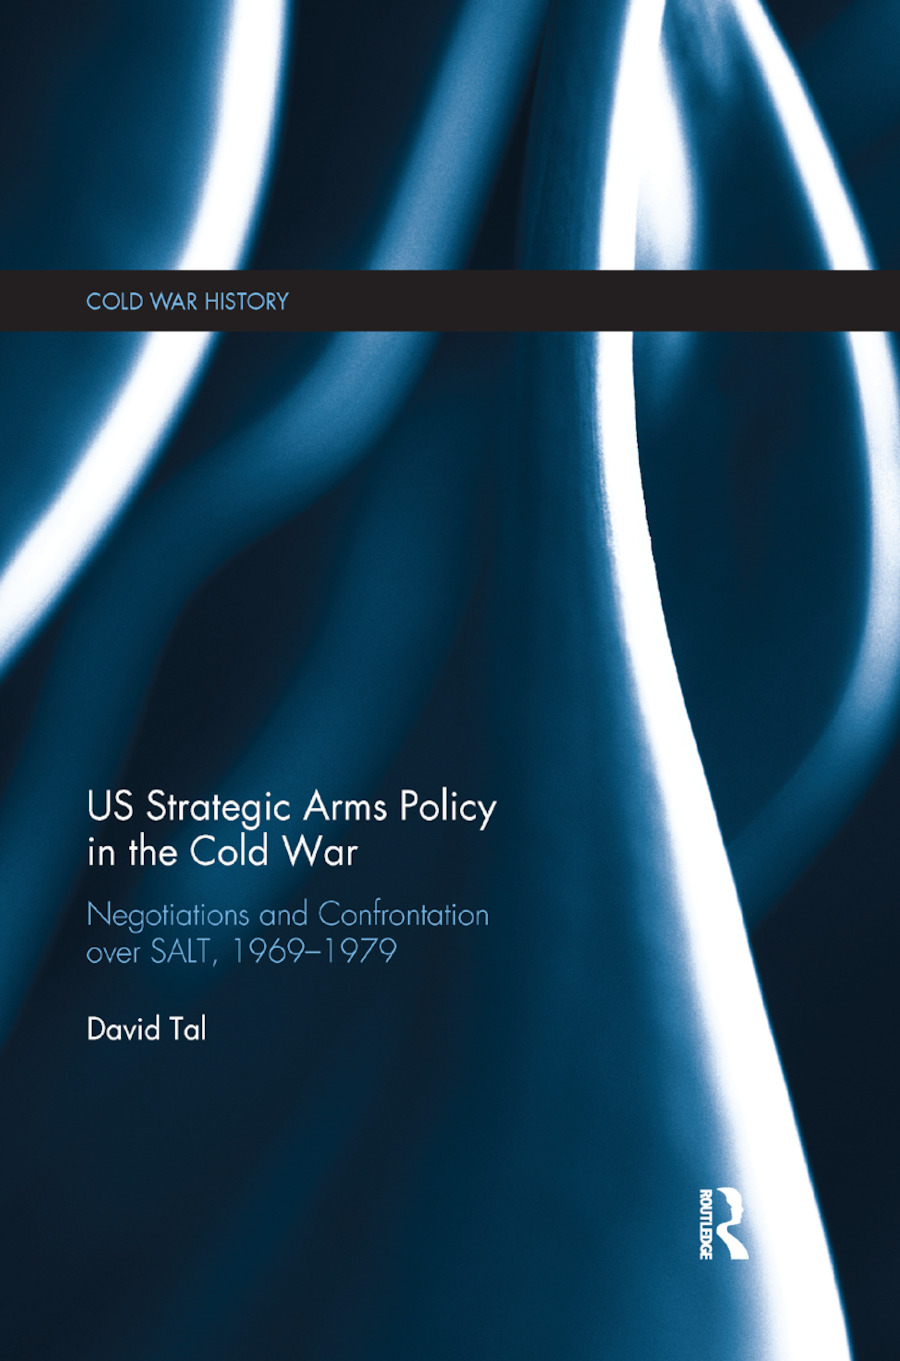 US Strategic Arms Policy in the Cold War: Negotiation and Confrontation over SALT, 1969-1979 book cover